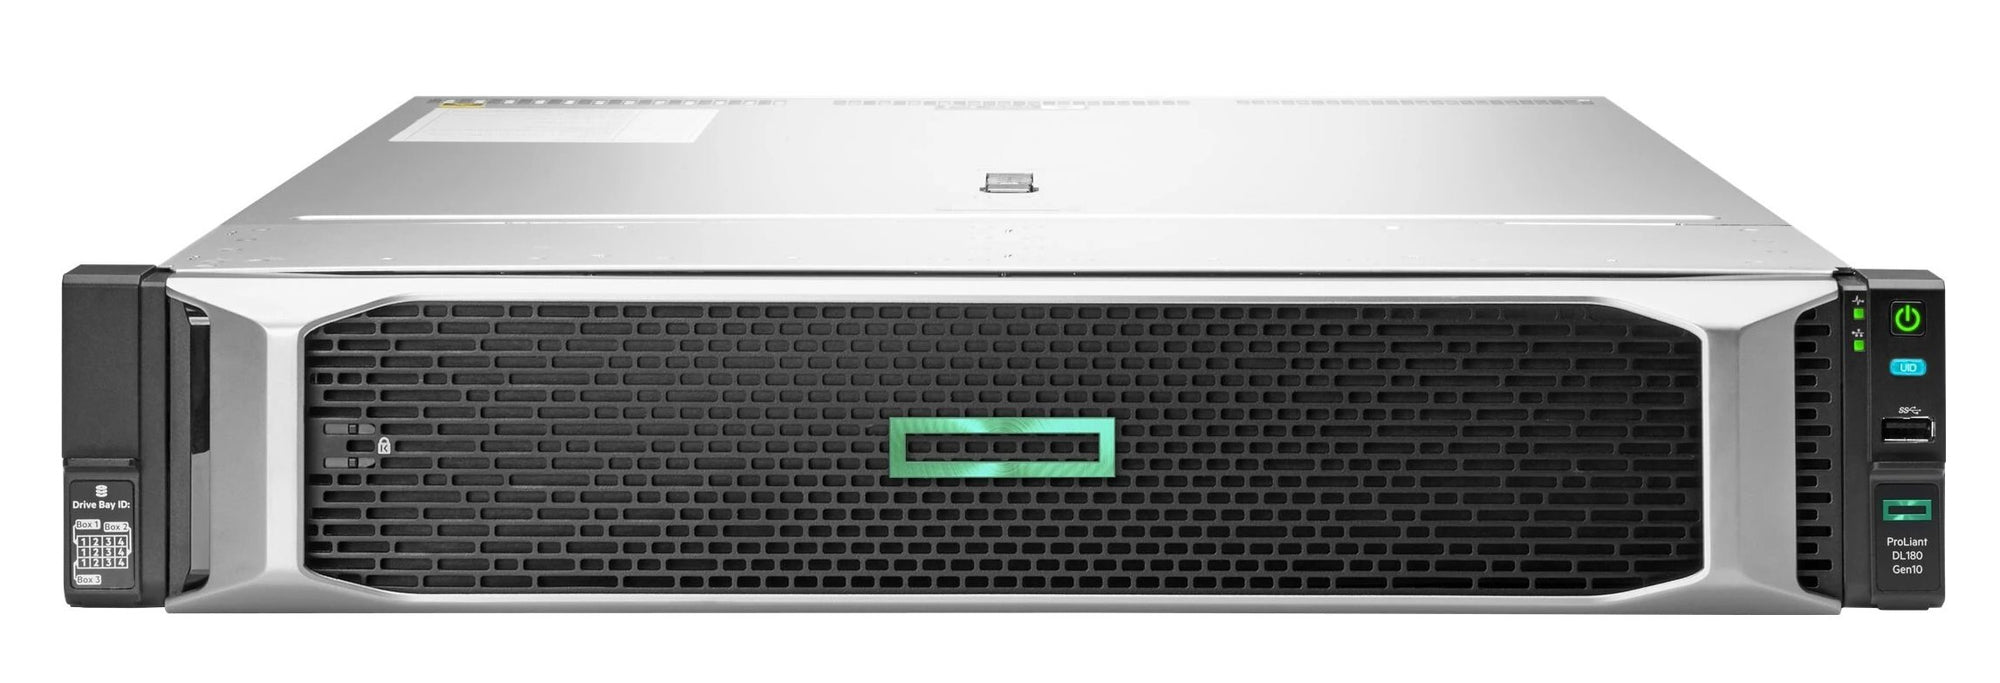 Refurbished HPE ProLiant DL180 Gen10 Configure to Order Server